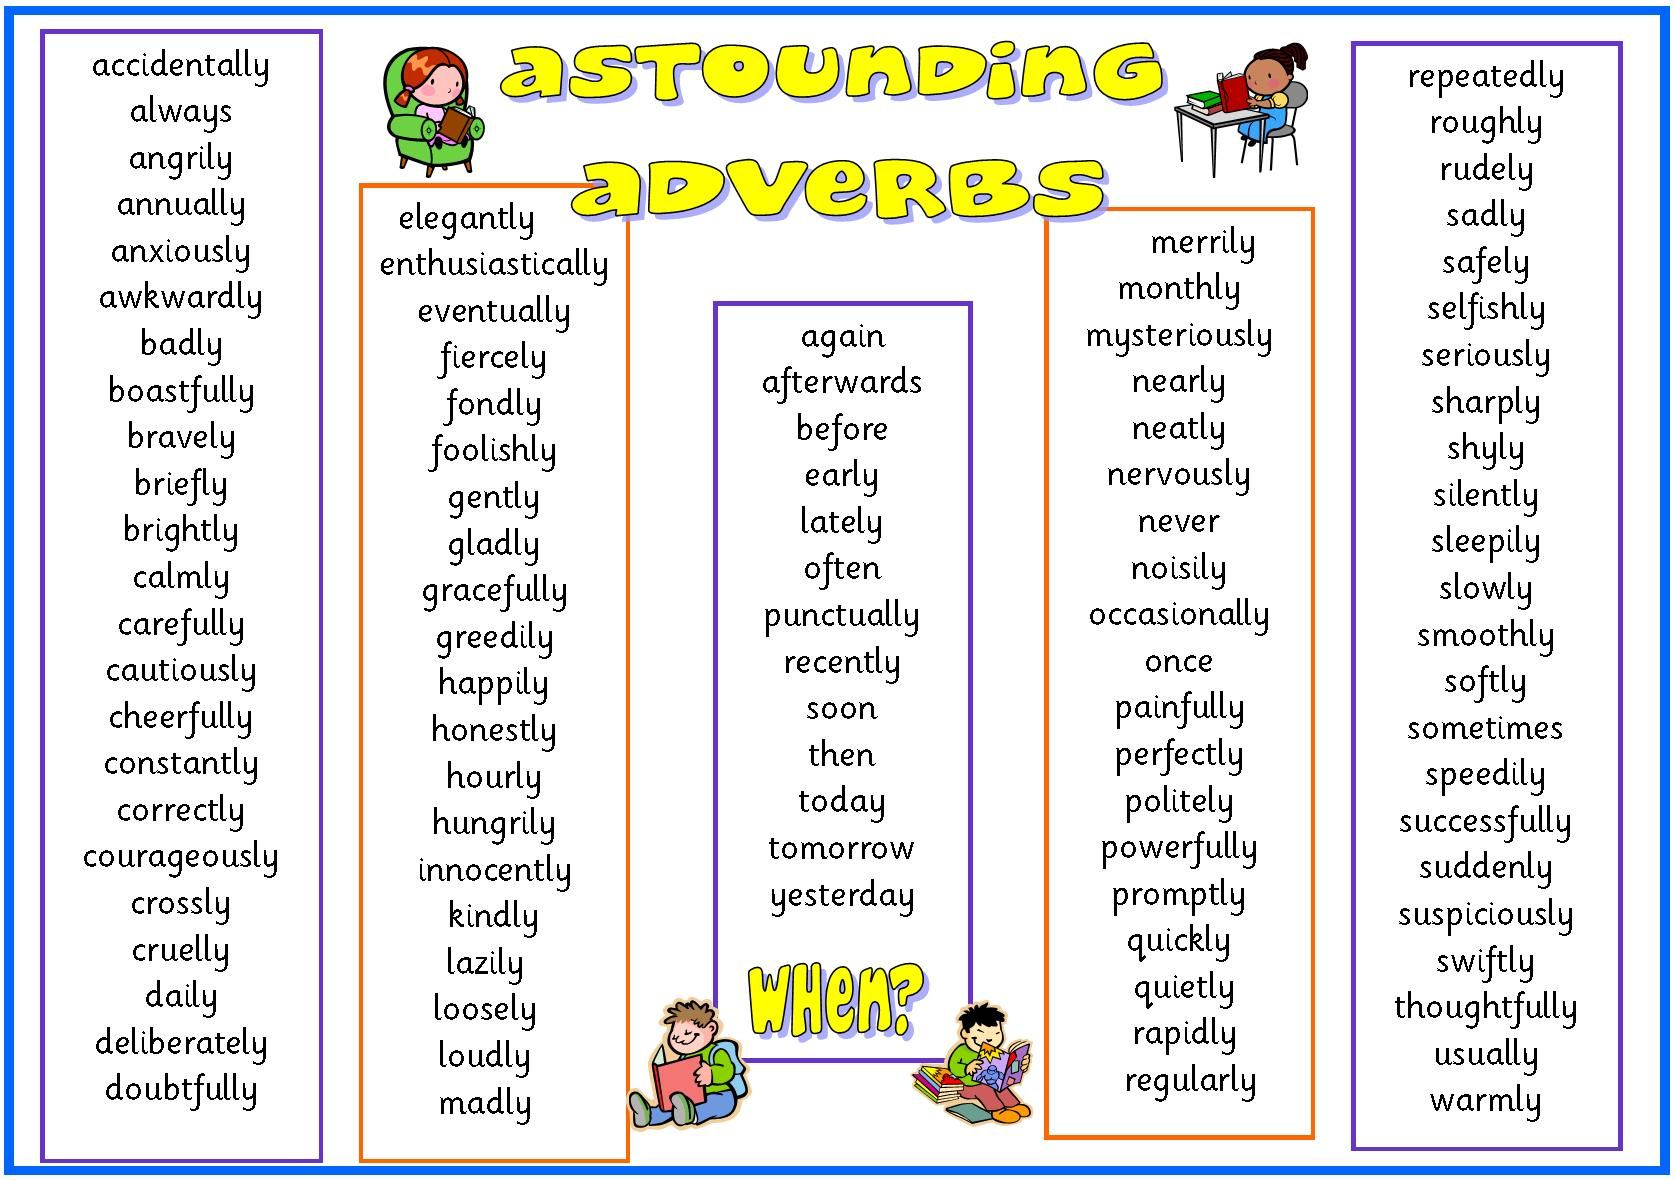 Adverbs Astounding Adverbs Help Mat